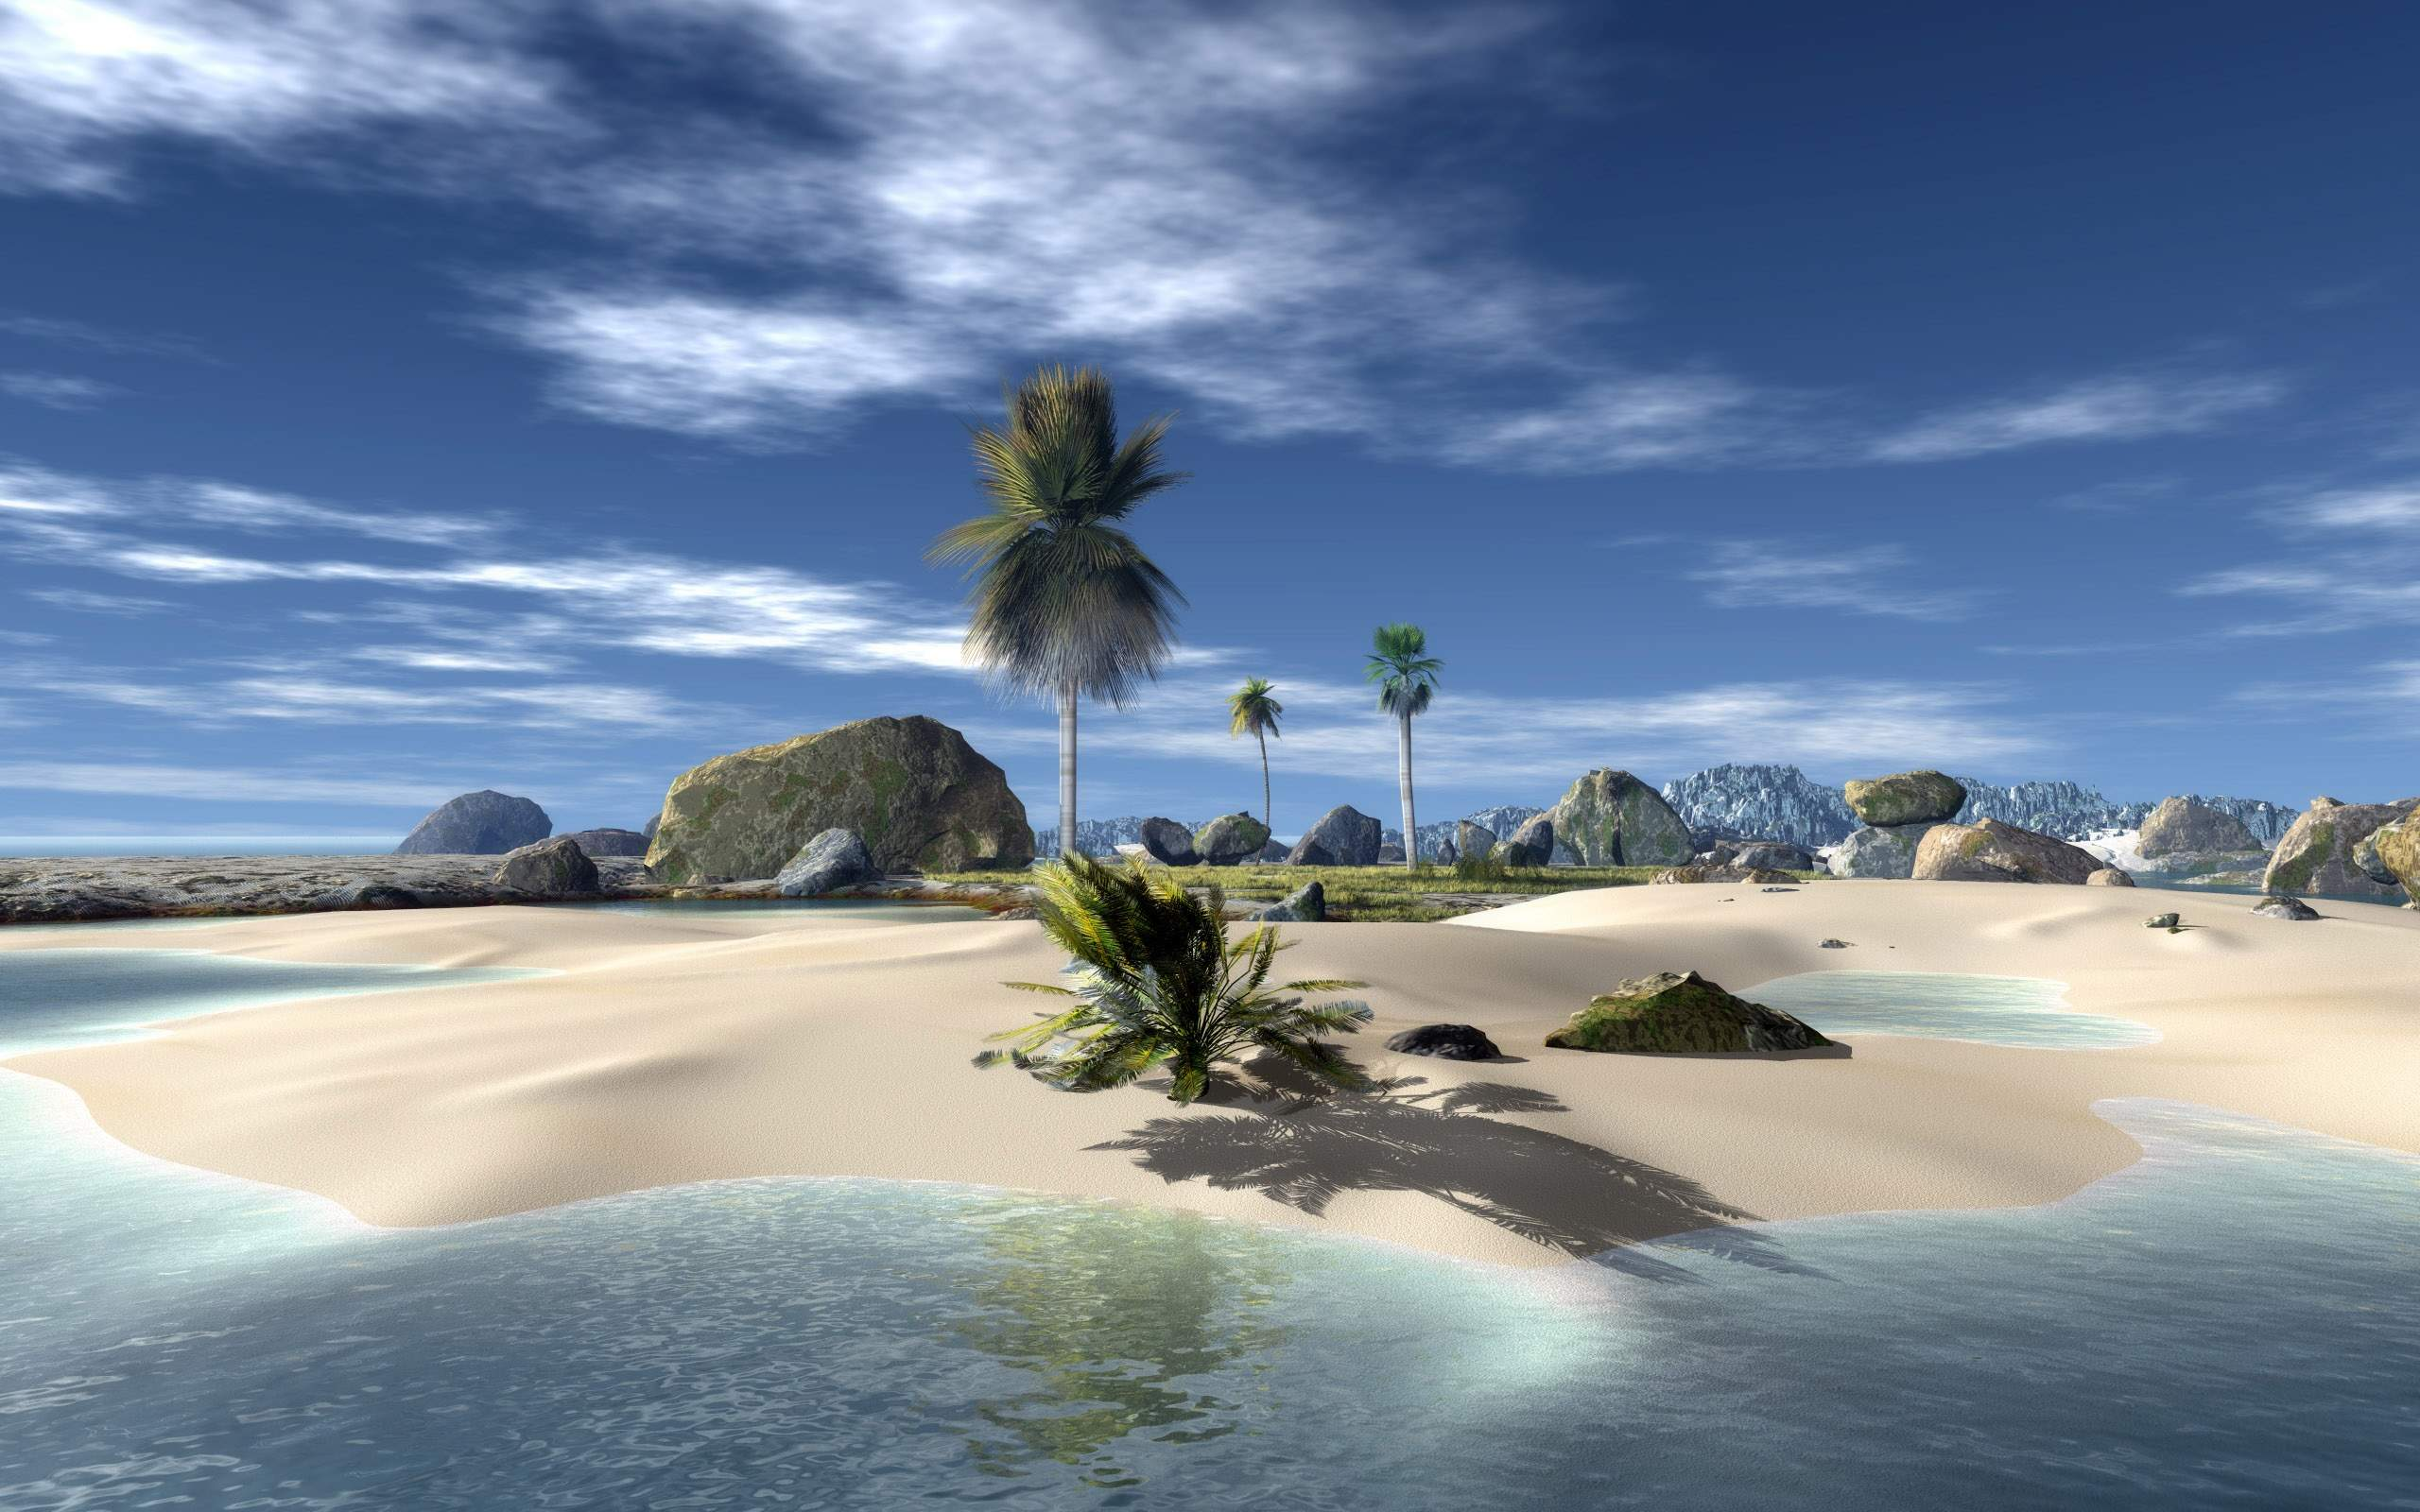 wallpaper.wiki-HD-wallpaper-nature-beach-3D-1-PIC-WPE0013567